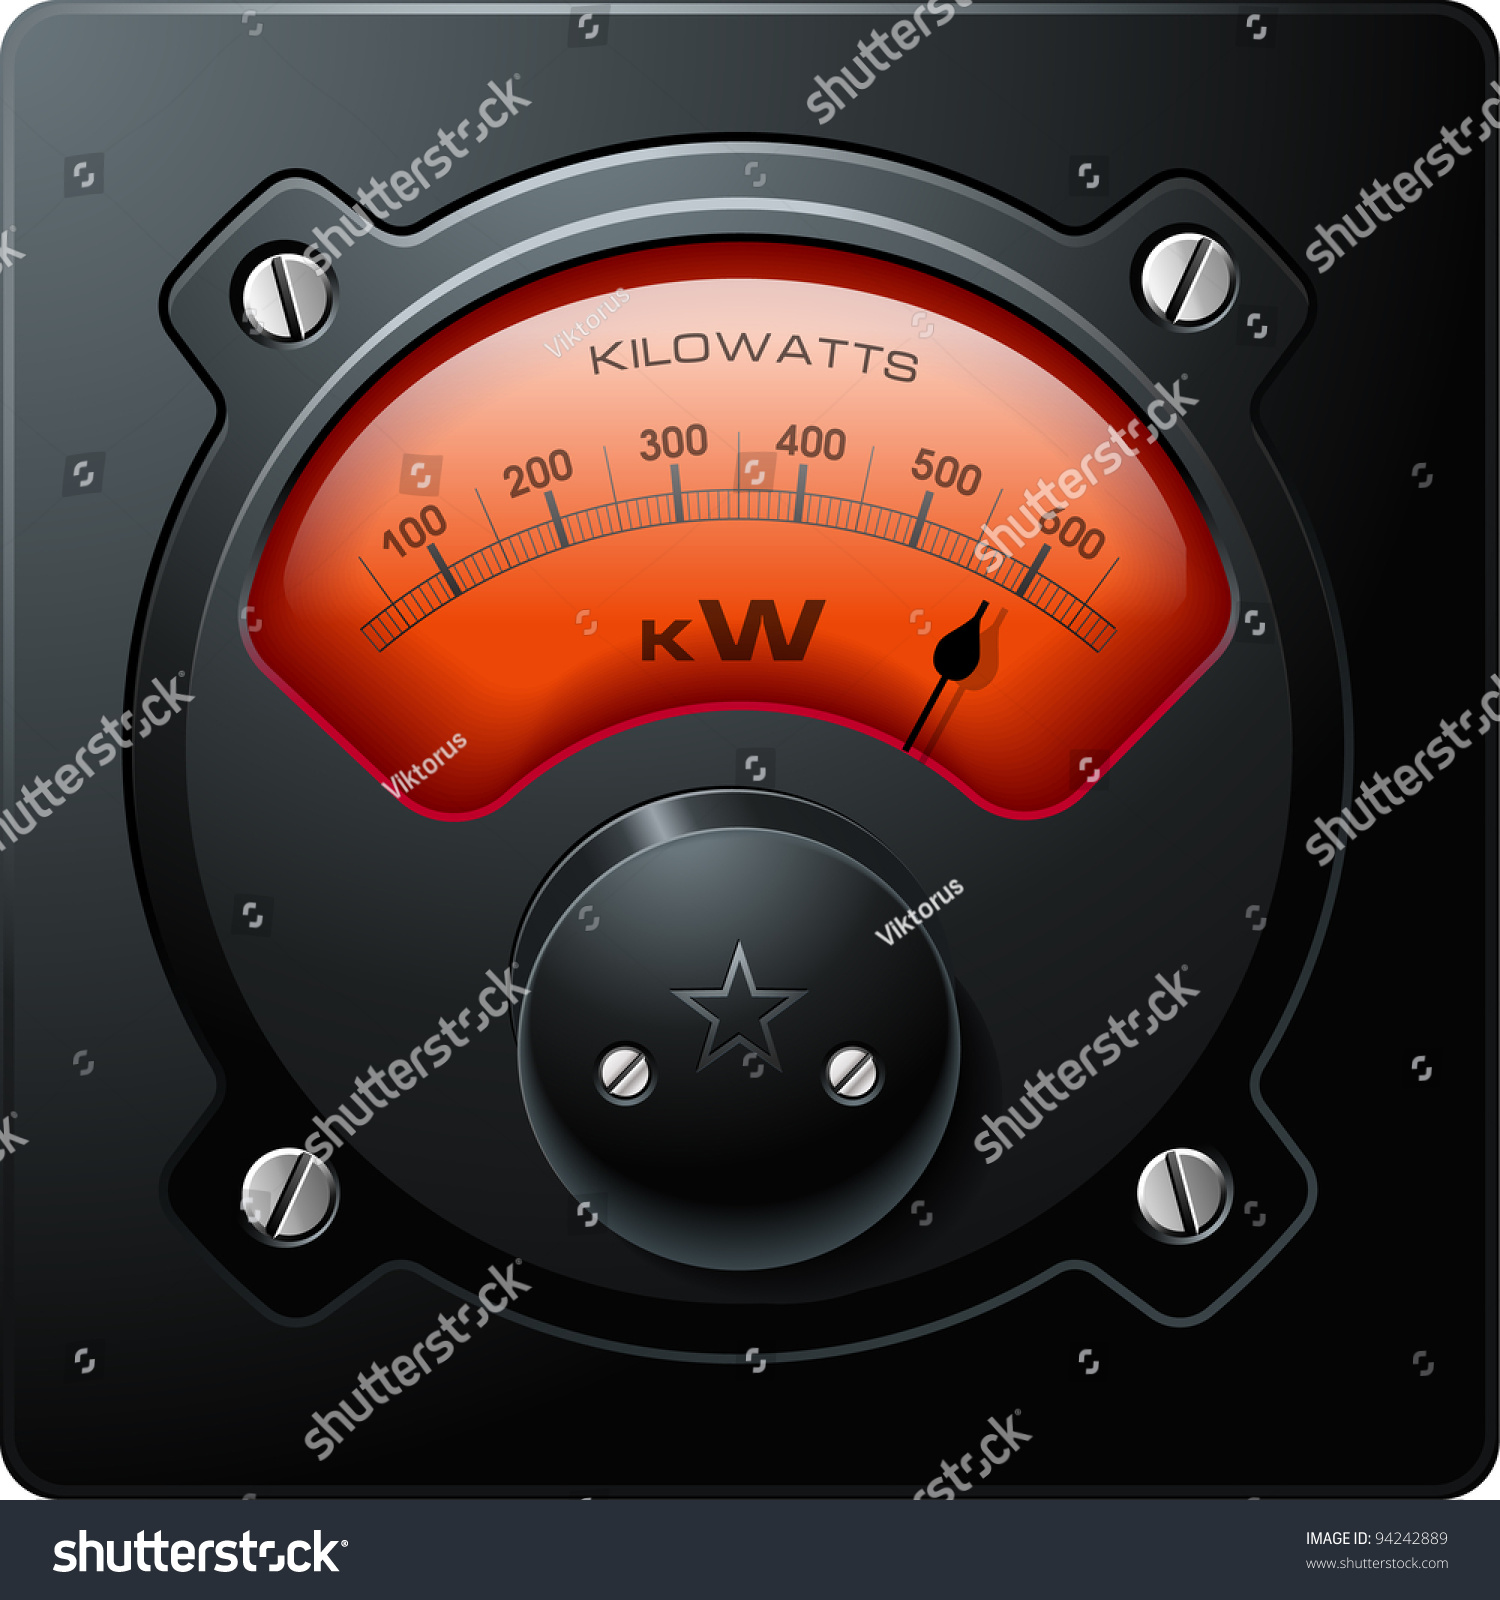 Analog Electric Meter : Analog electrical meter red realistic detailed vector